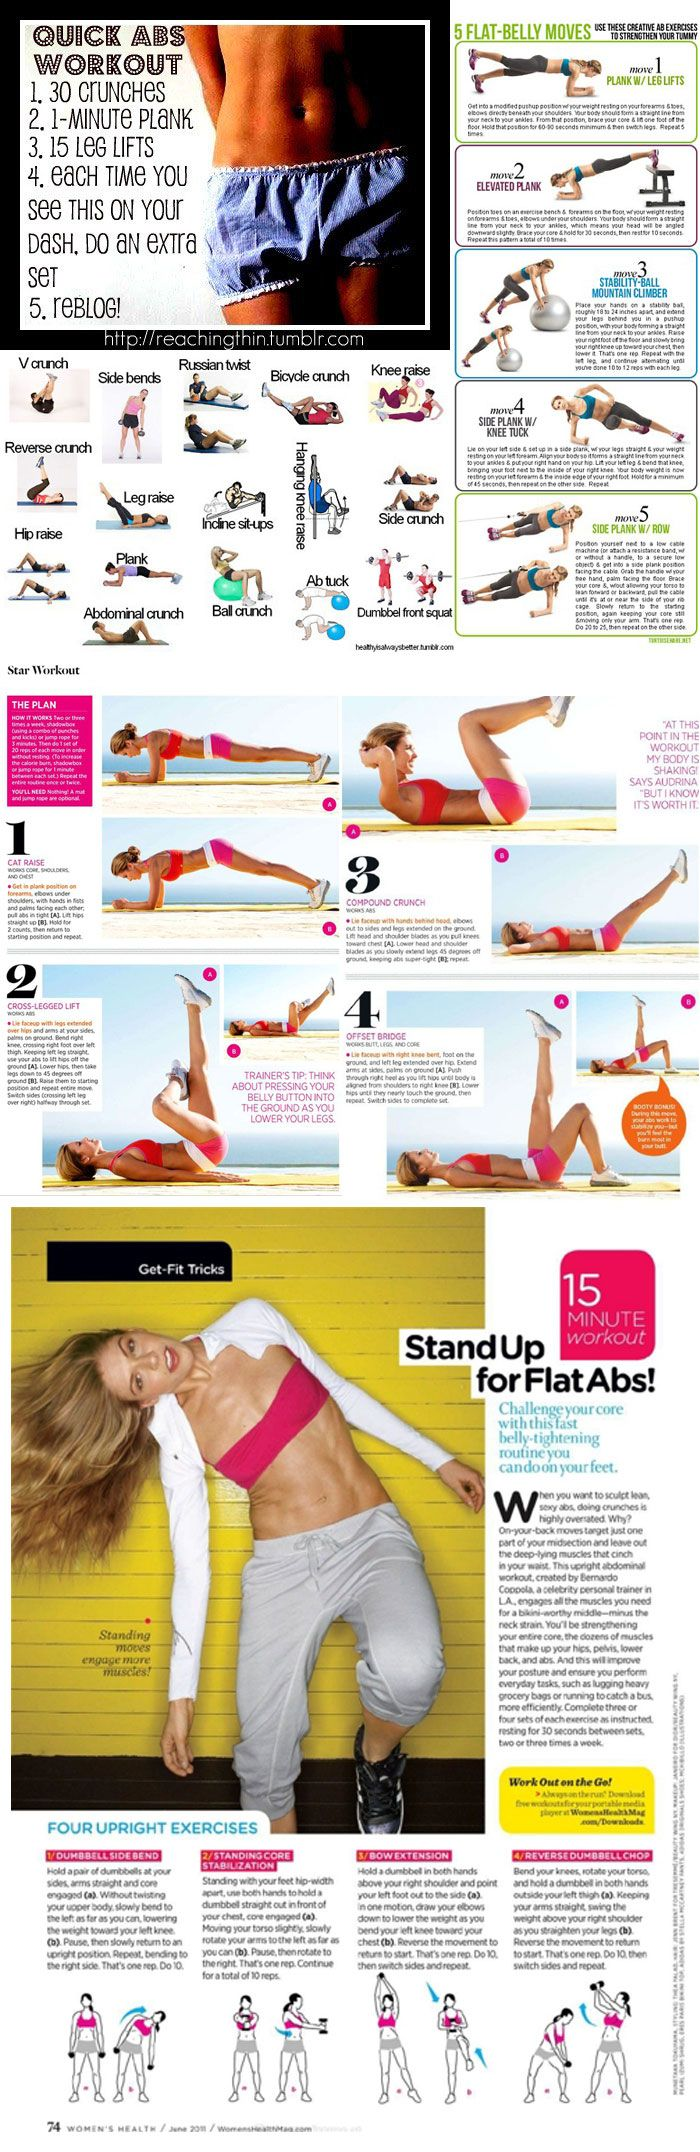 Phenomenal abdominals :-) Workout tips for abs.